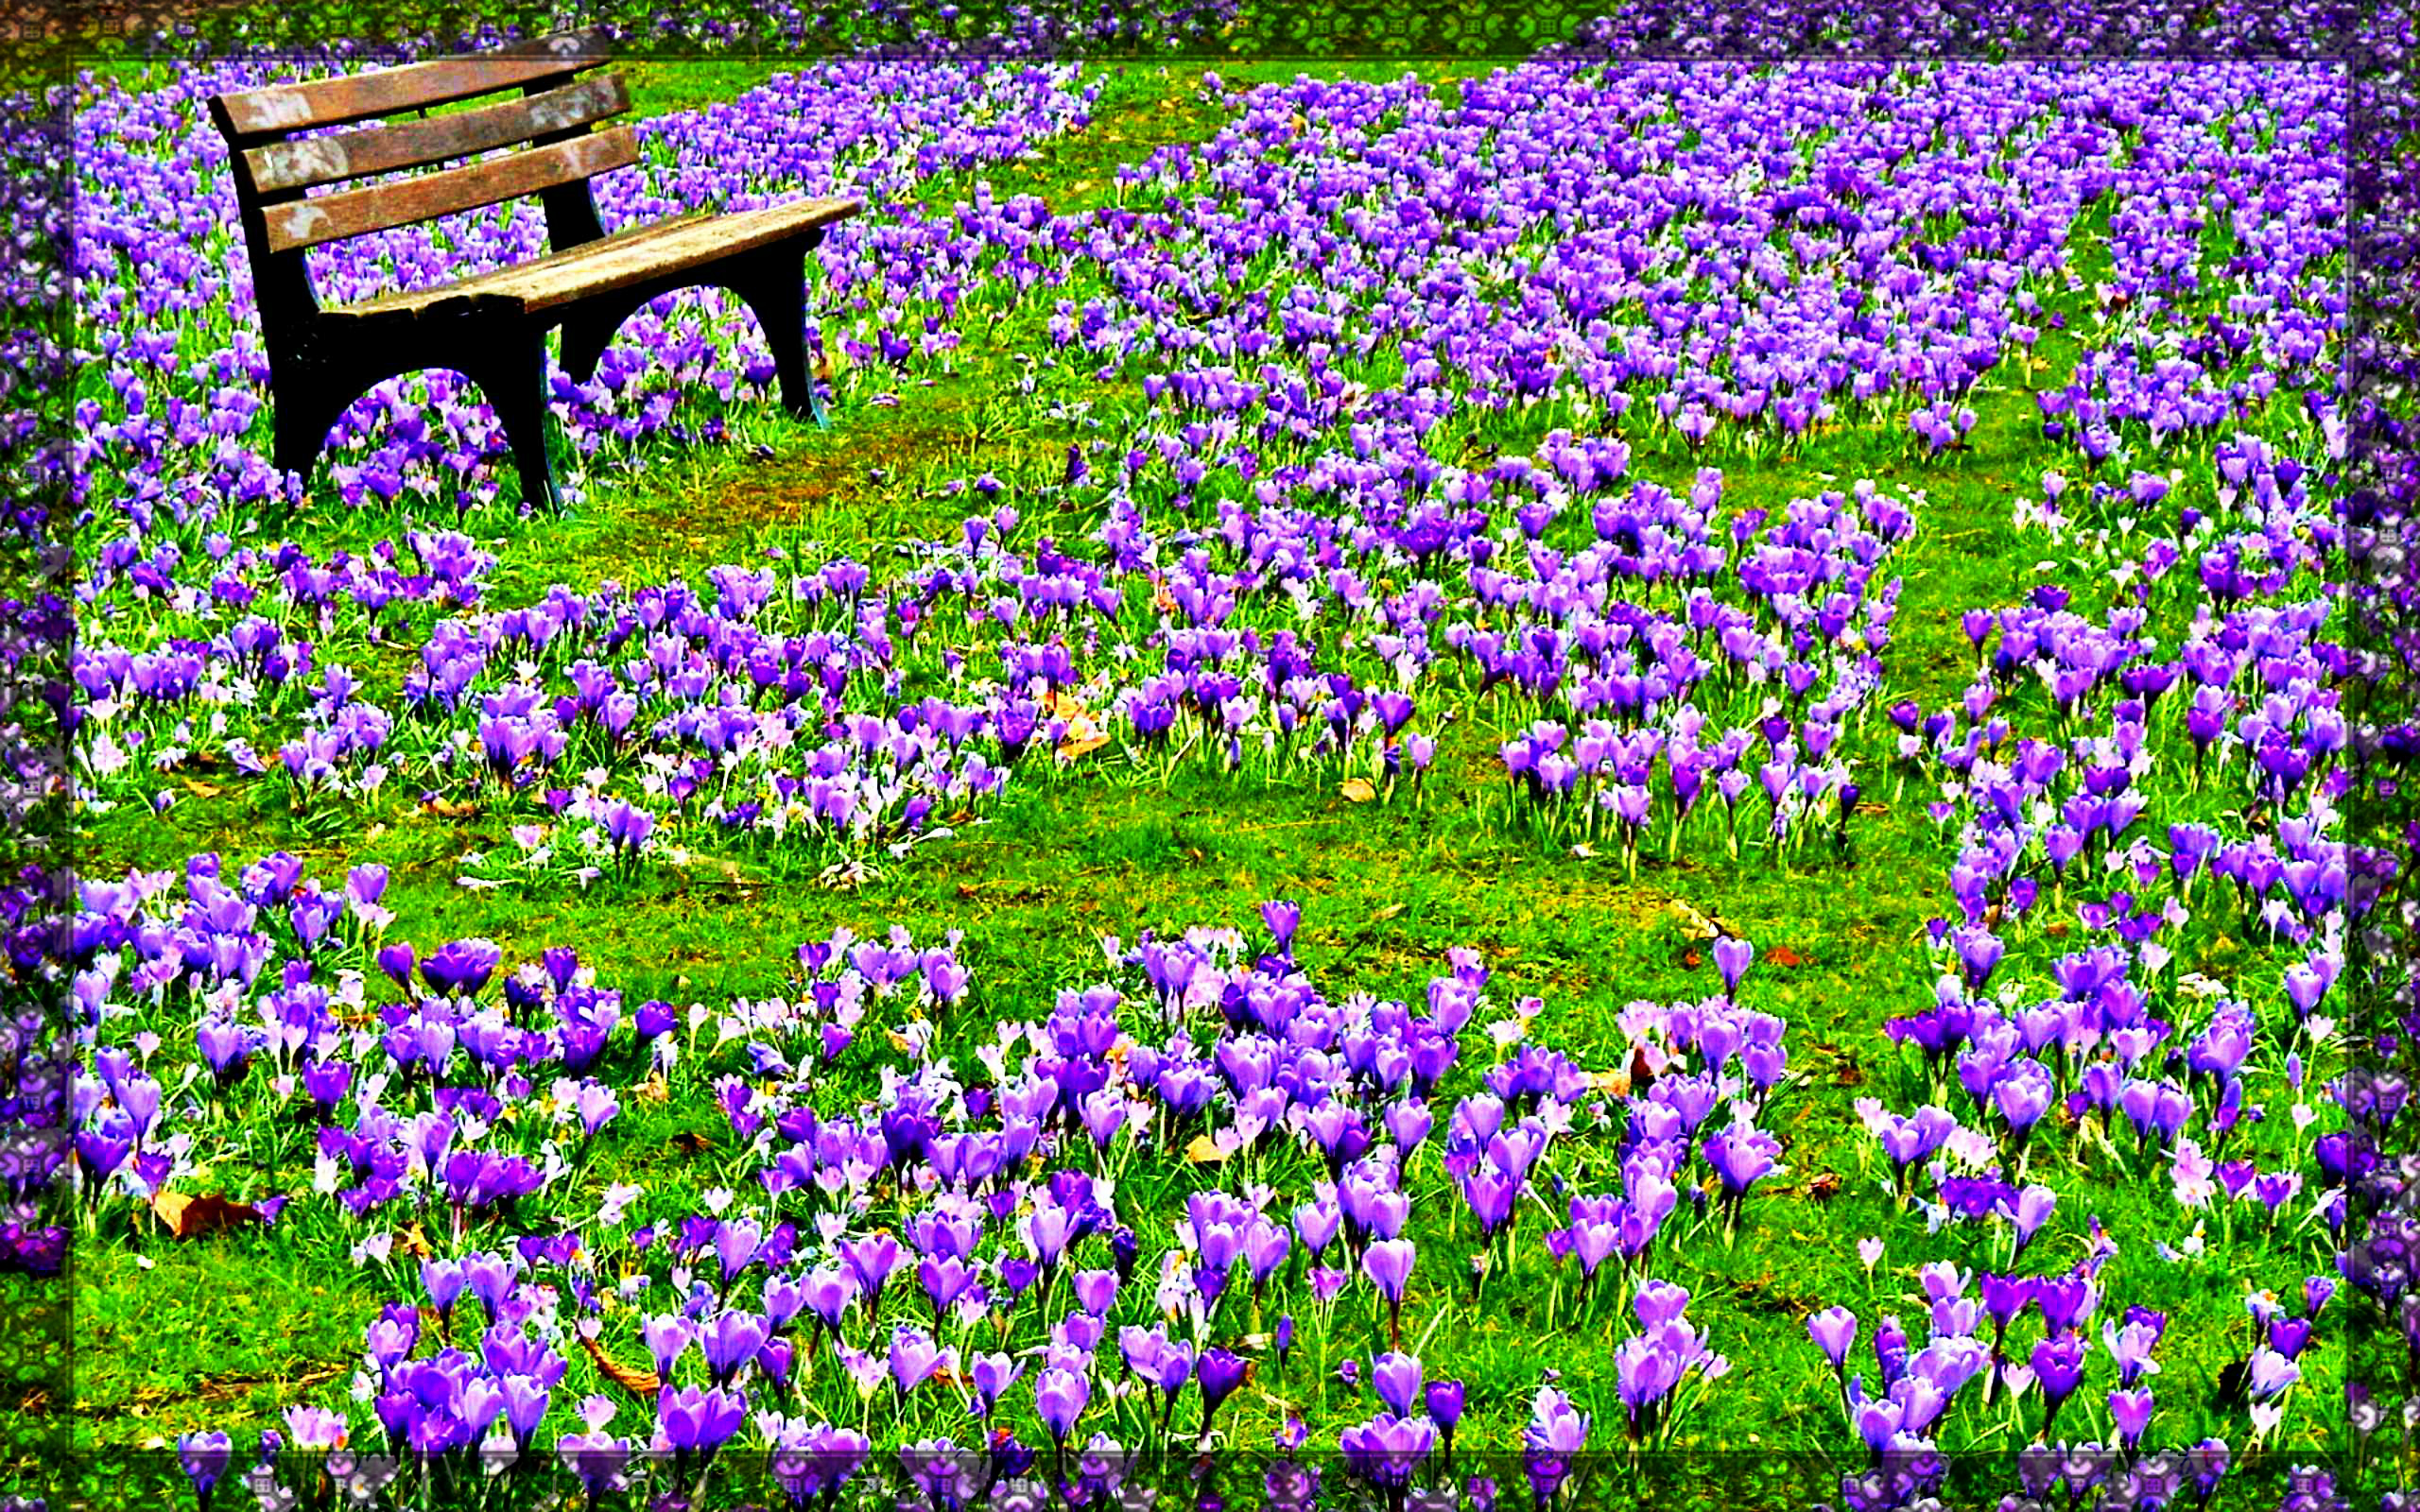 Spring Pictures For Desktop 2017   2018 Best Cars Reviews 2560x1600